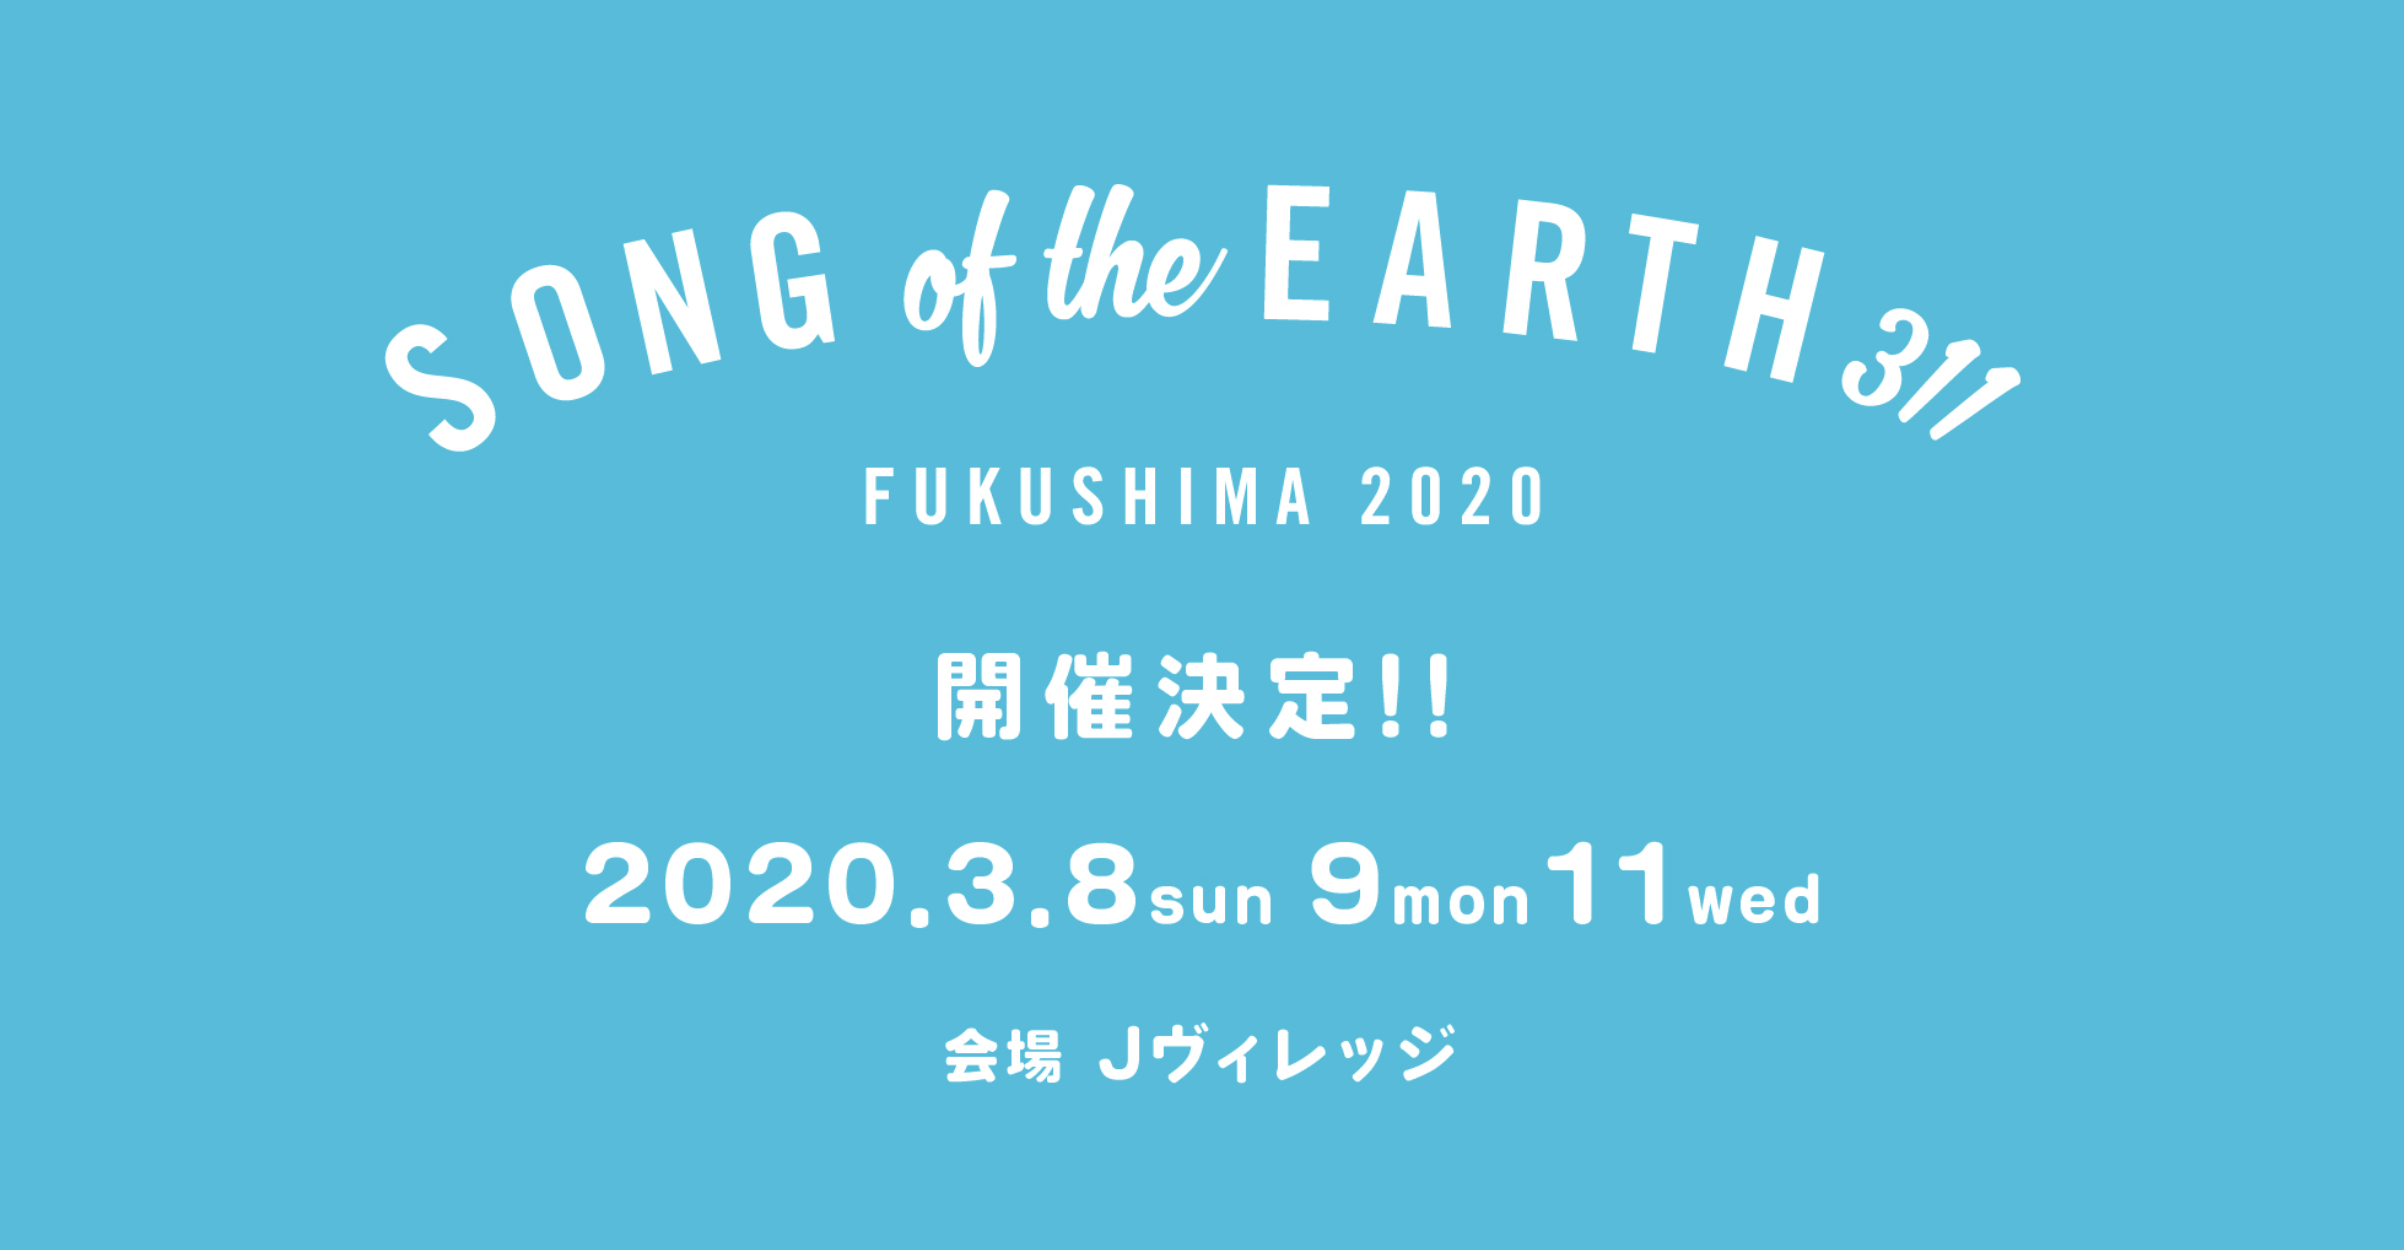 SONG OF THE EARTH 311 開催 ボランティア募集中!!